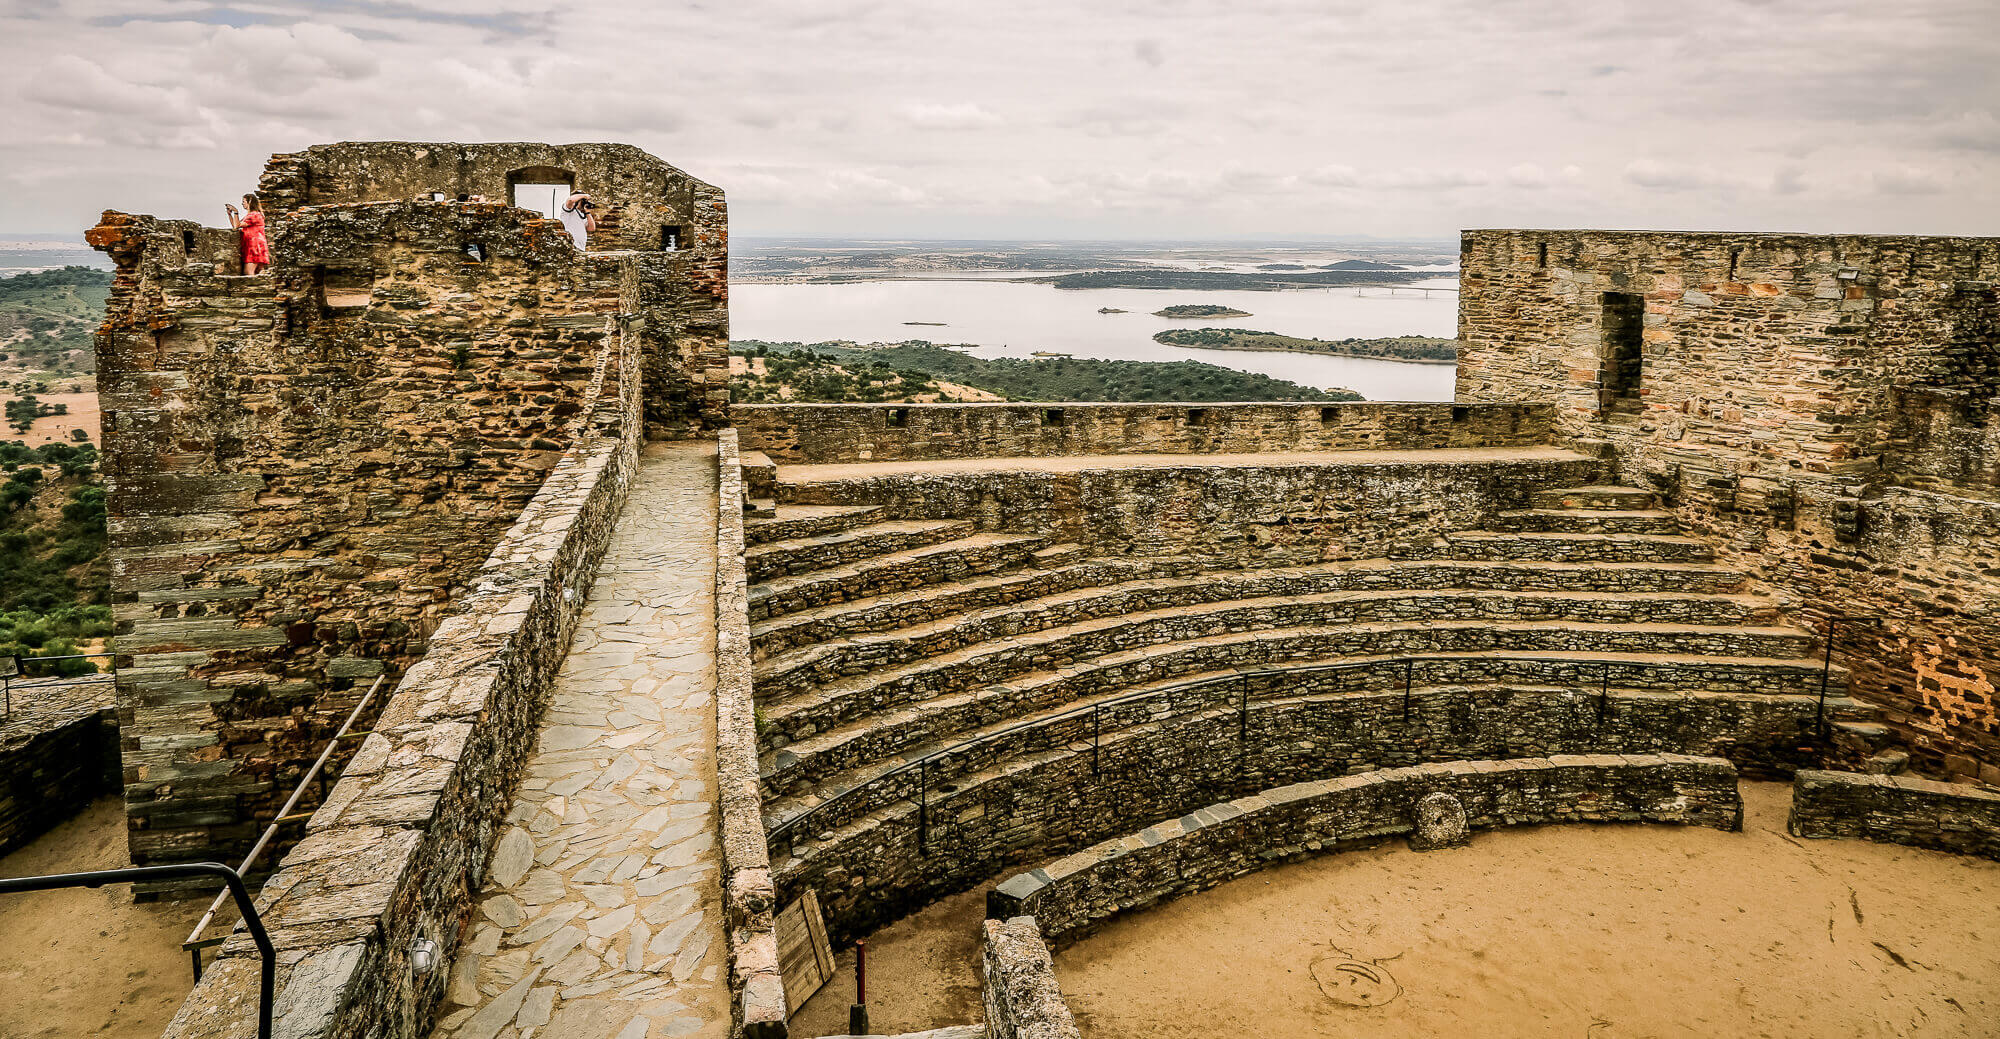 Monsaraz Castle amphitheater